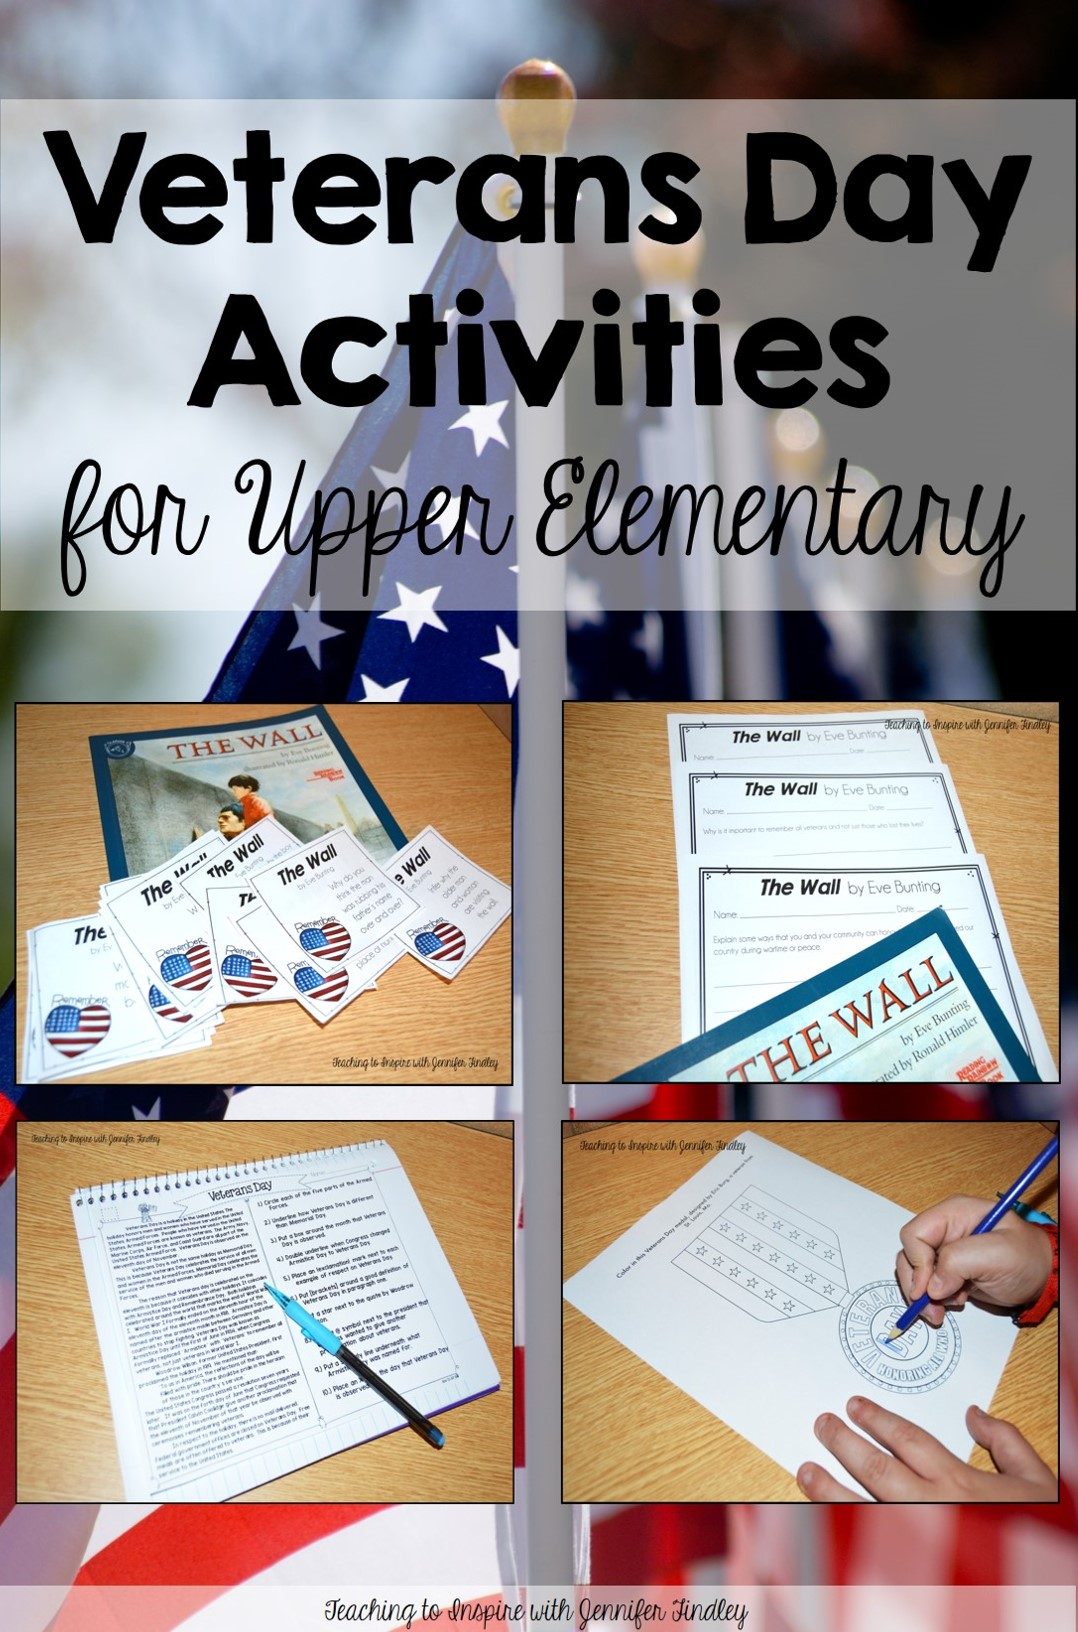 Veterans Day Activities for Upper Elementary Grades